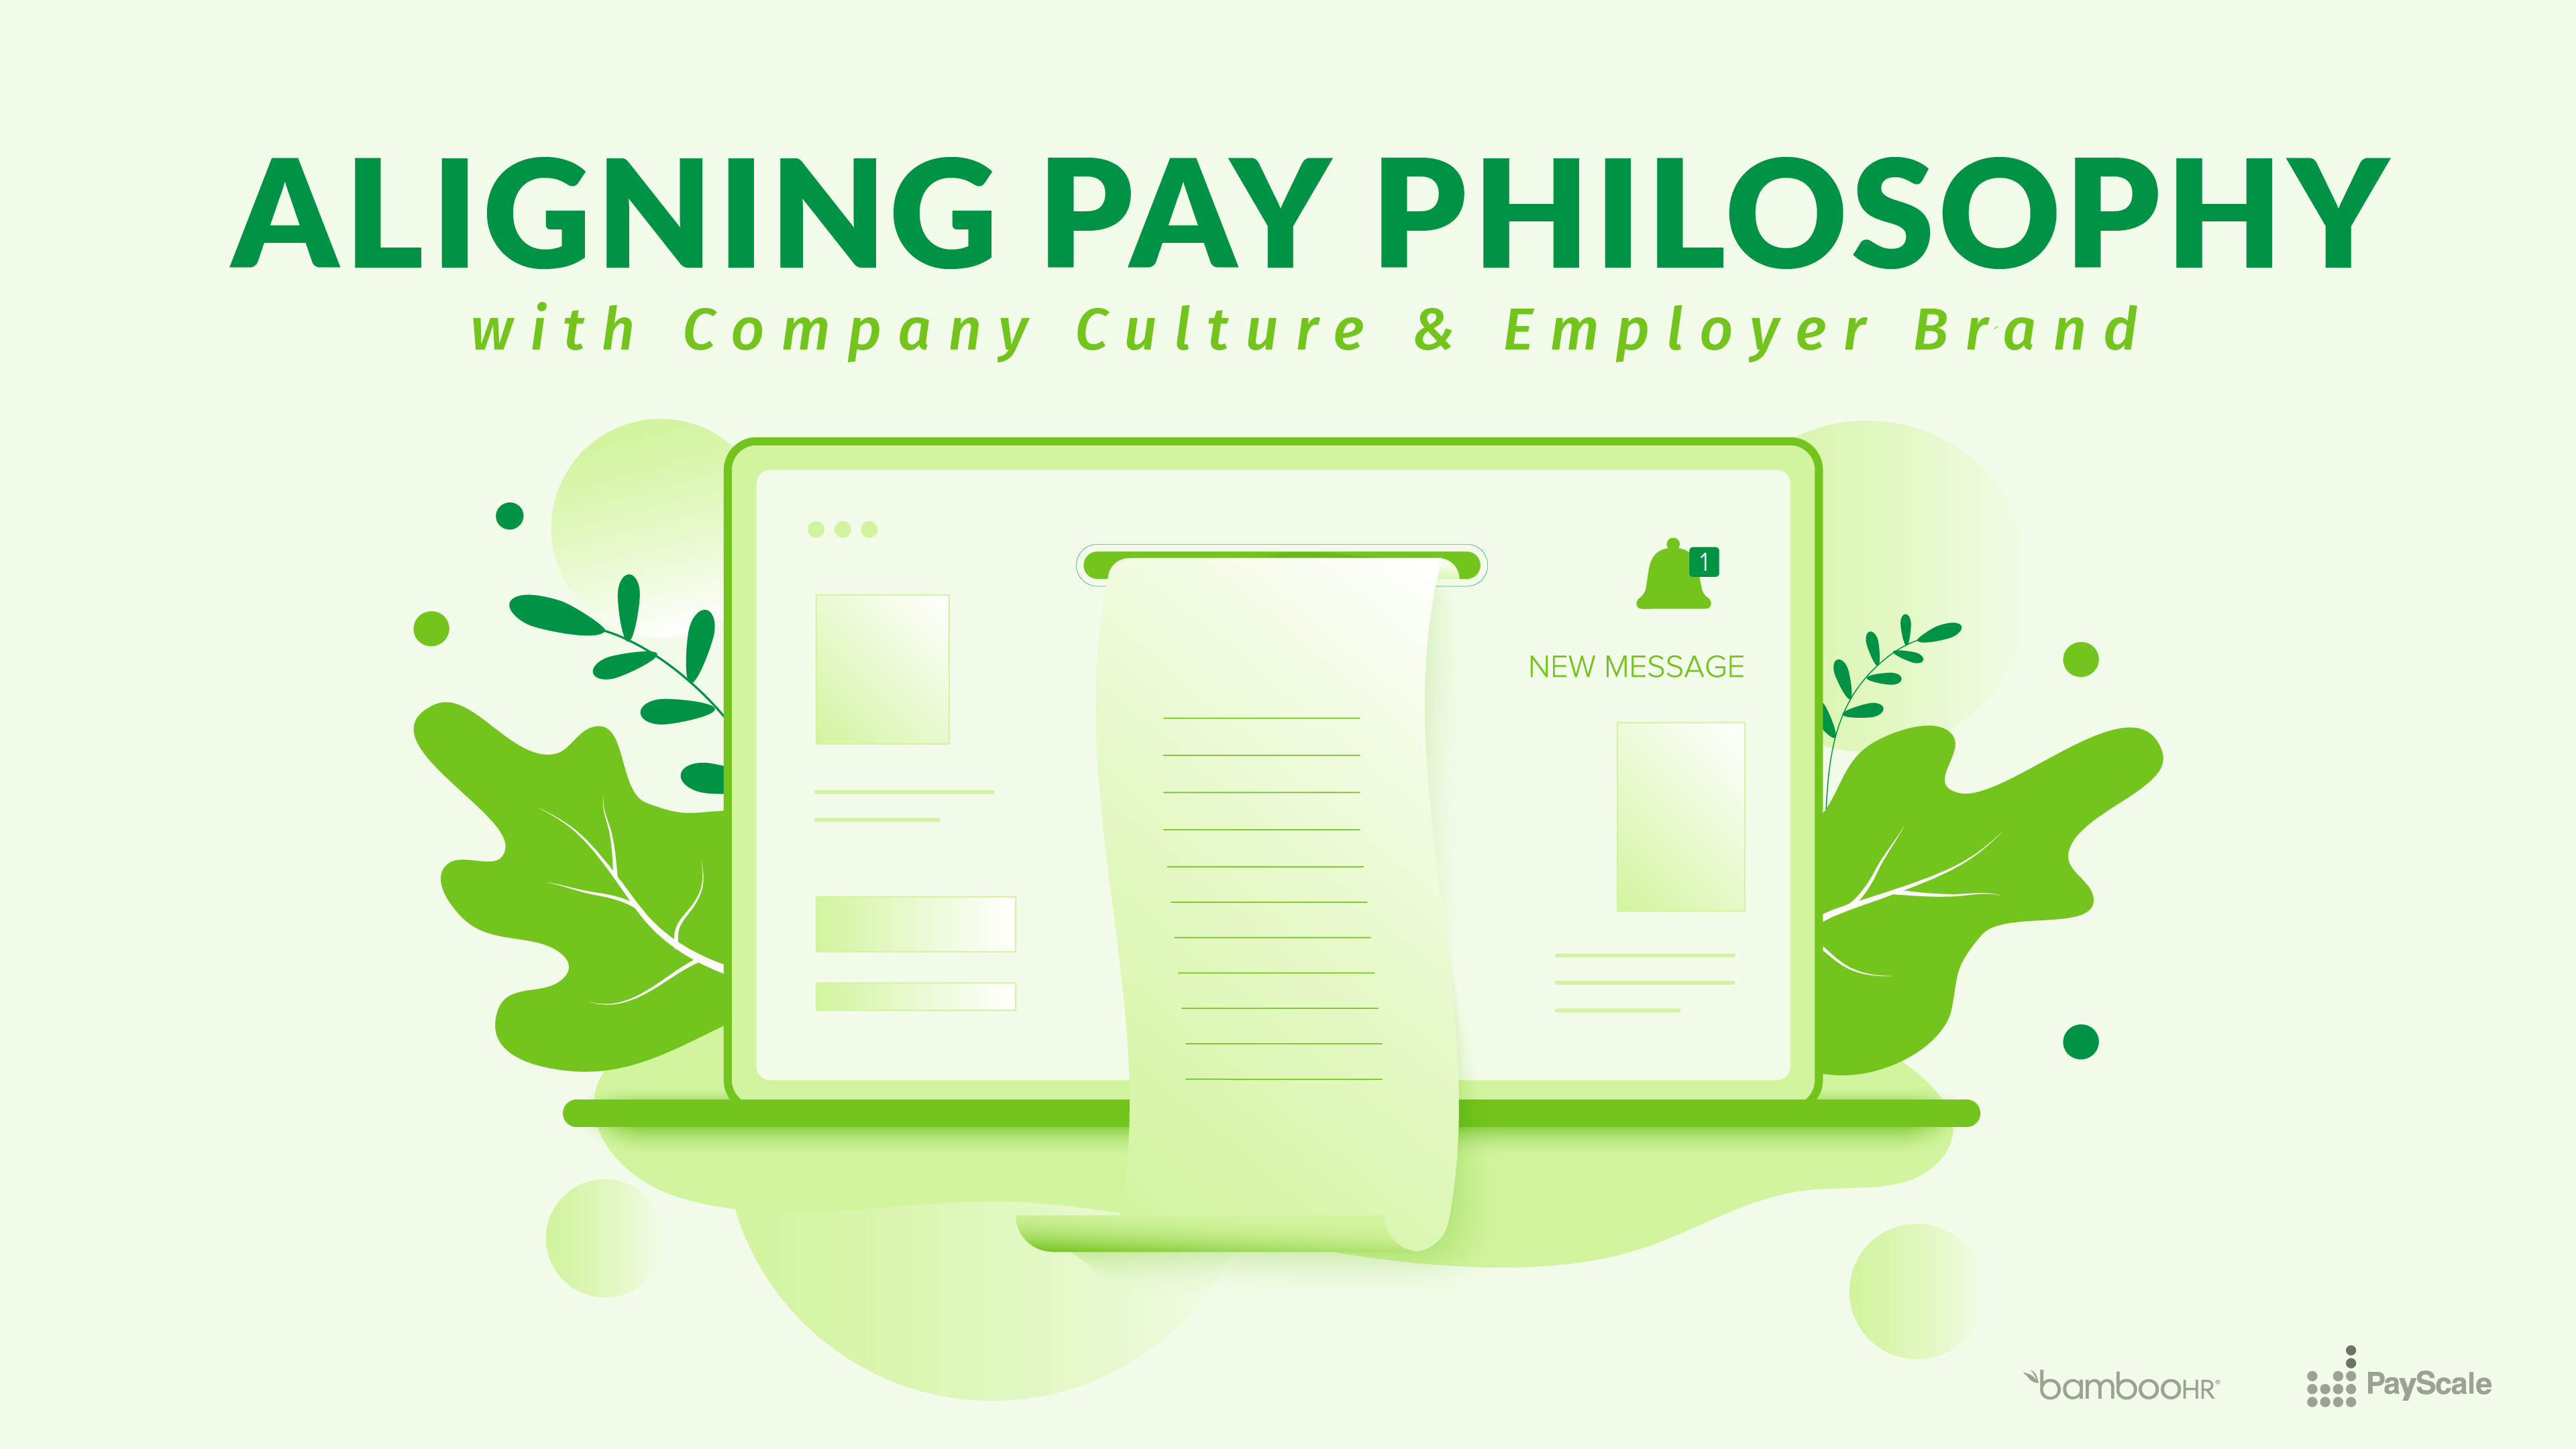 Aligning Pay Philosophy, Company Culture, and Employer Brand